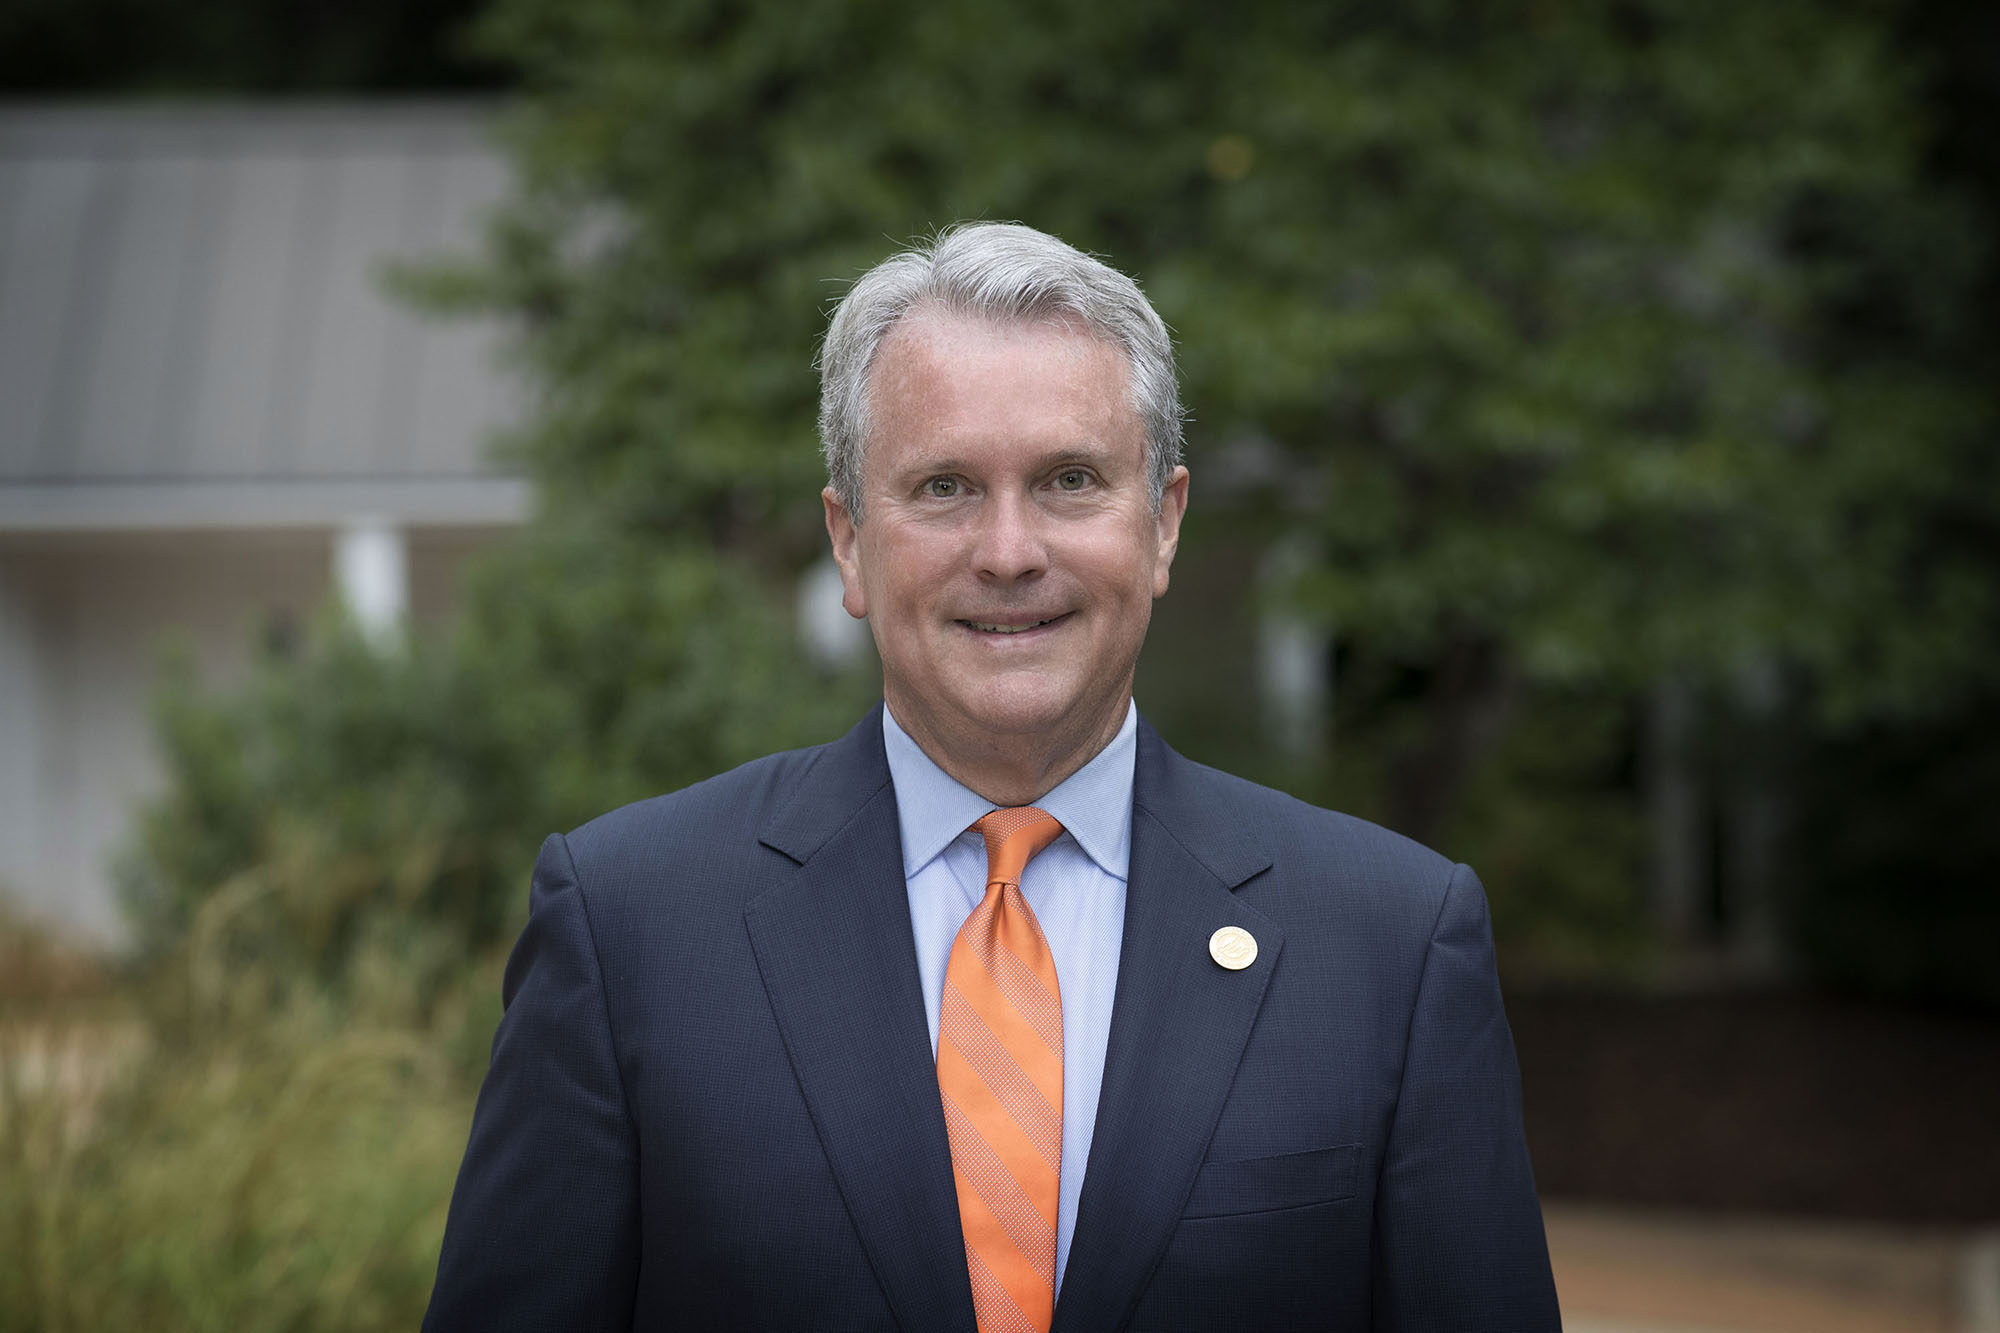 Ken White, associate dean for strategic partnerships and innovation in the School of Nursing, is the first UVA faculty member to lead the American Academy of Nursing.